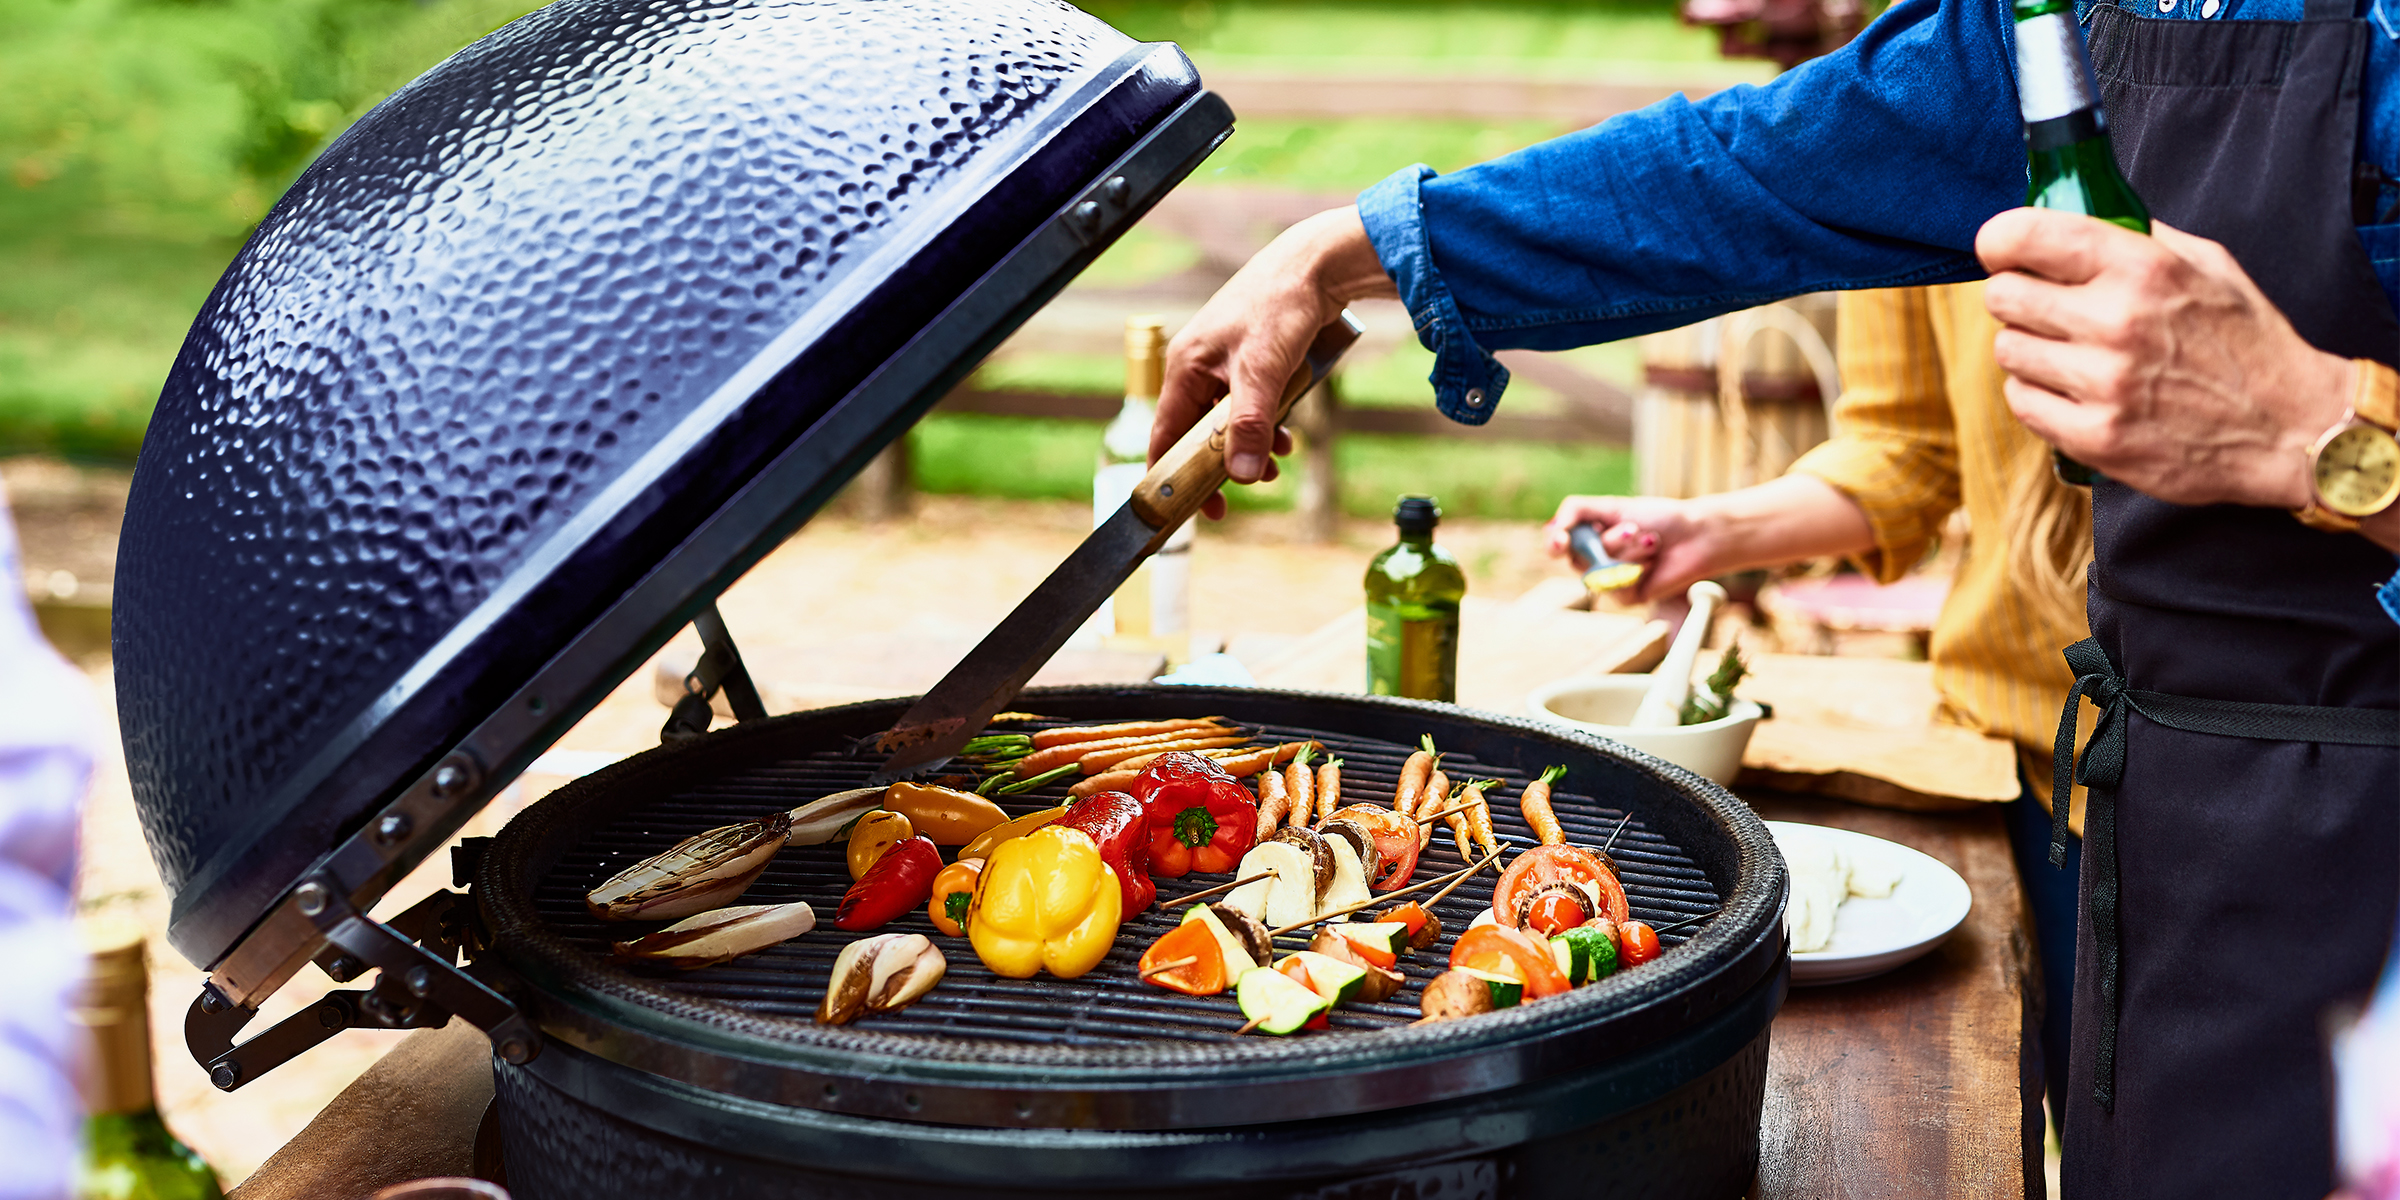 Best grilling accessories in 8, according to food experts